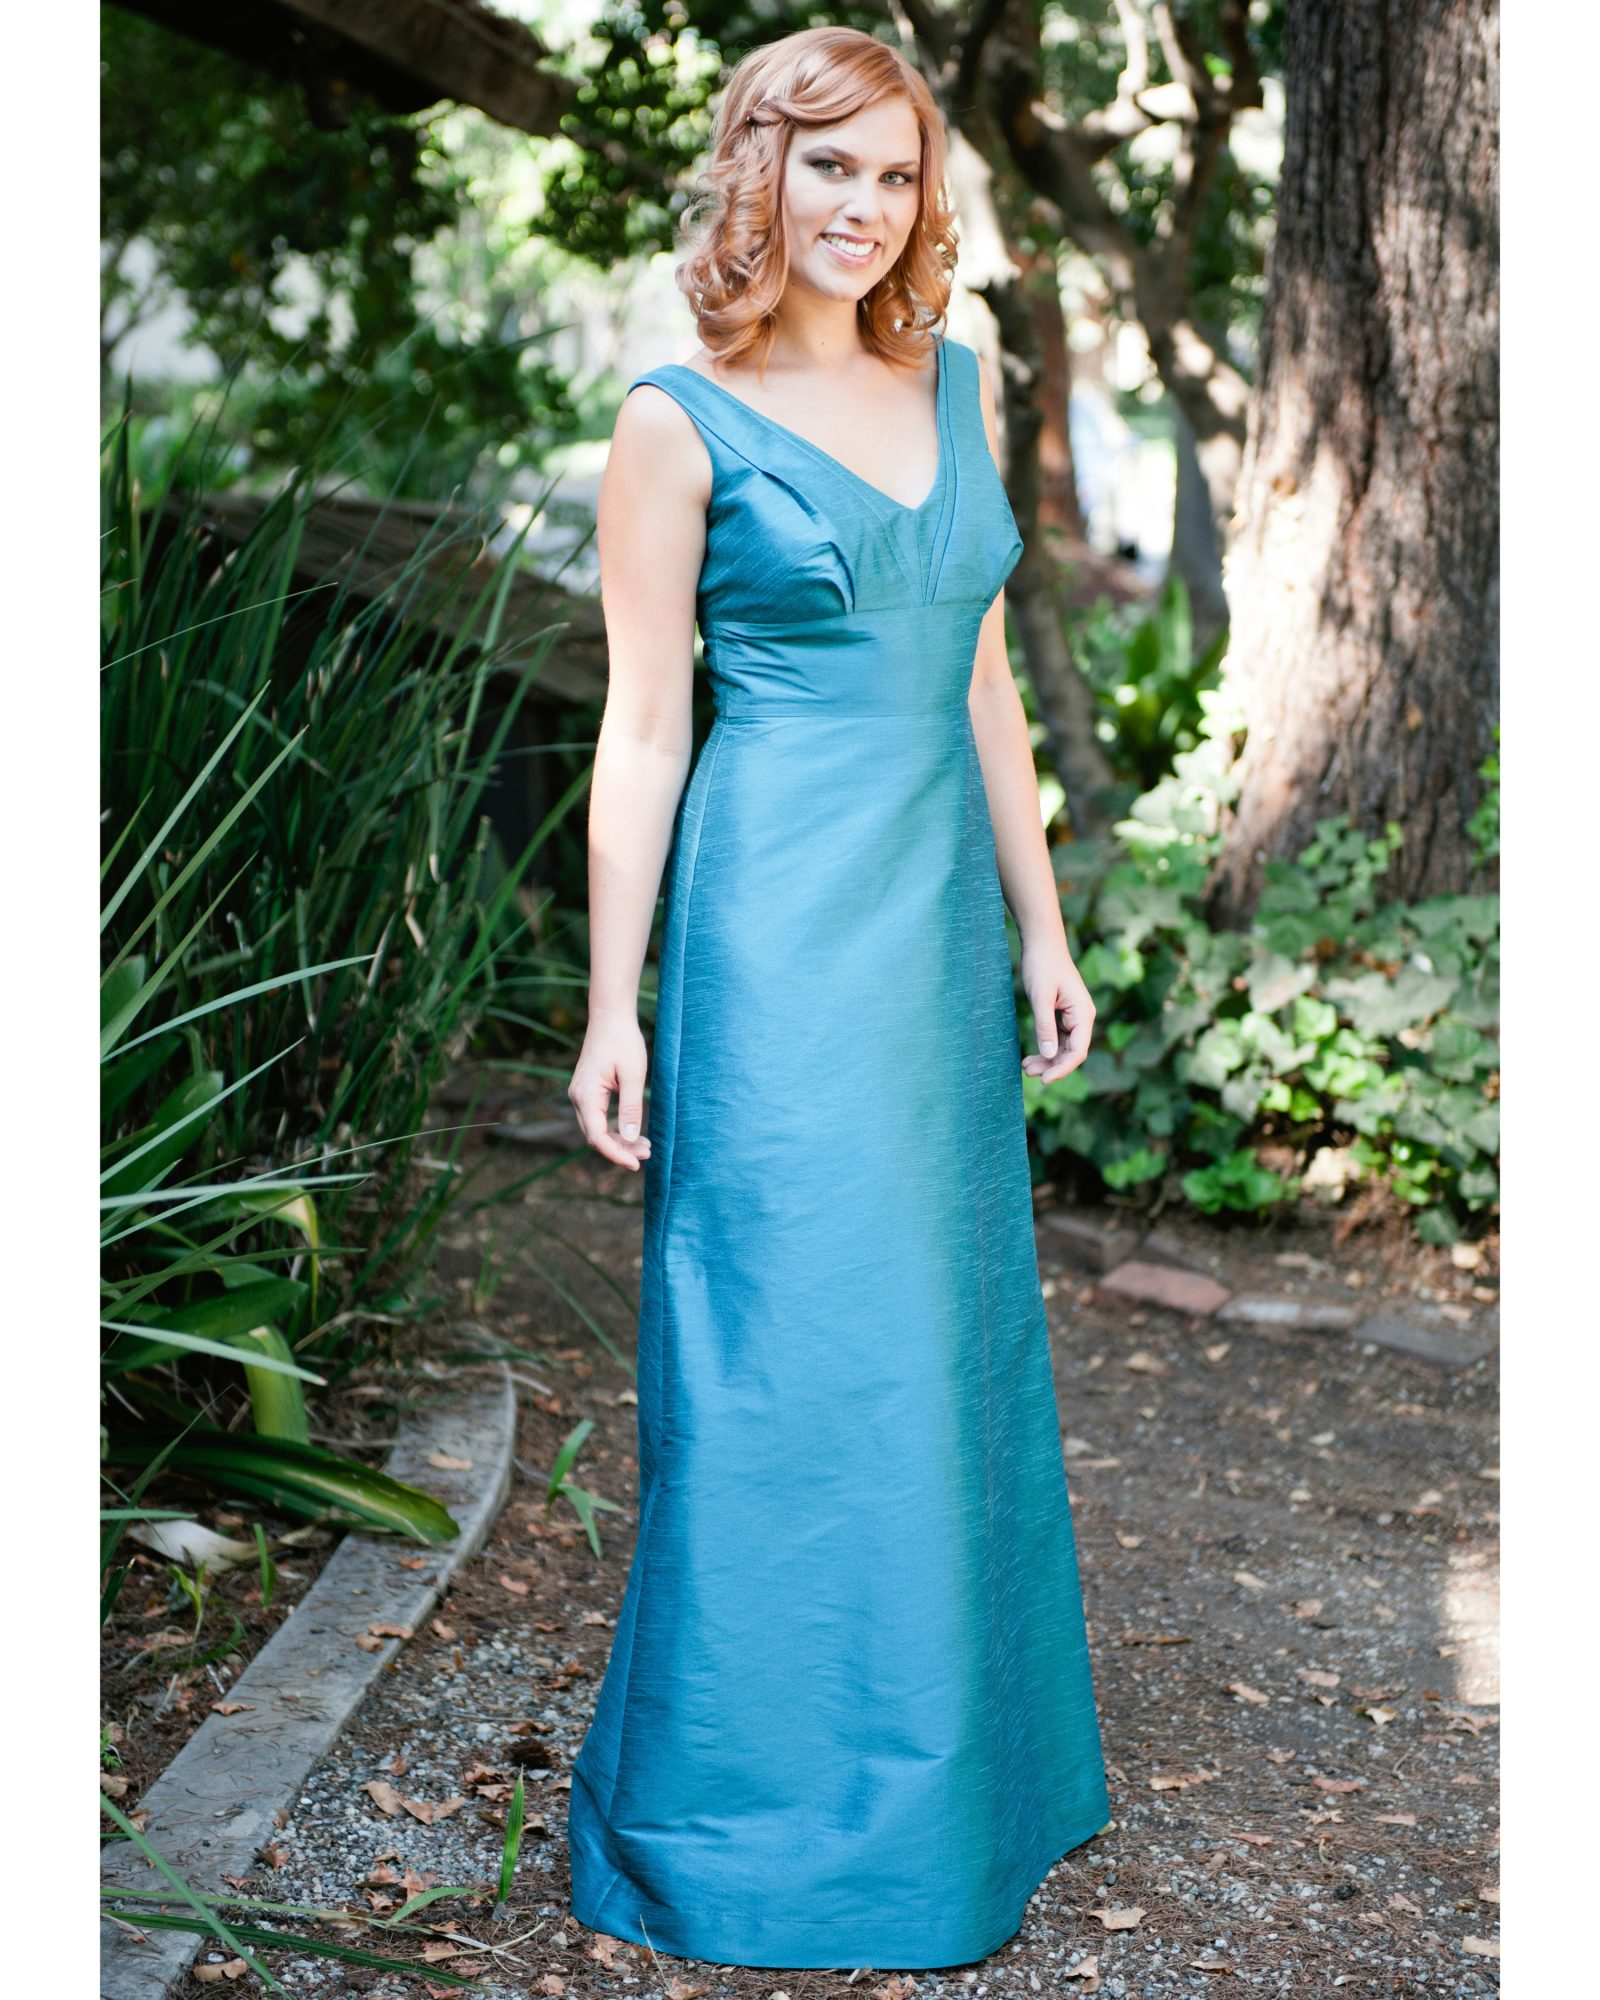 Teal Empire Bridesmaid Dress